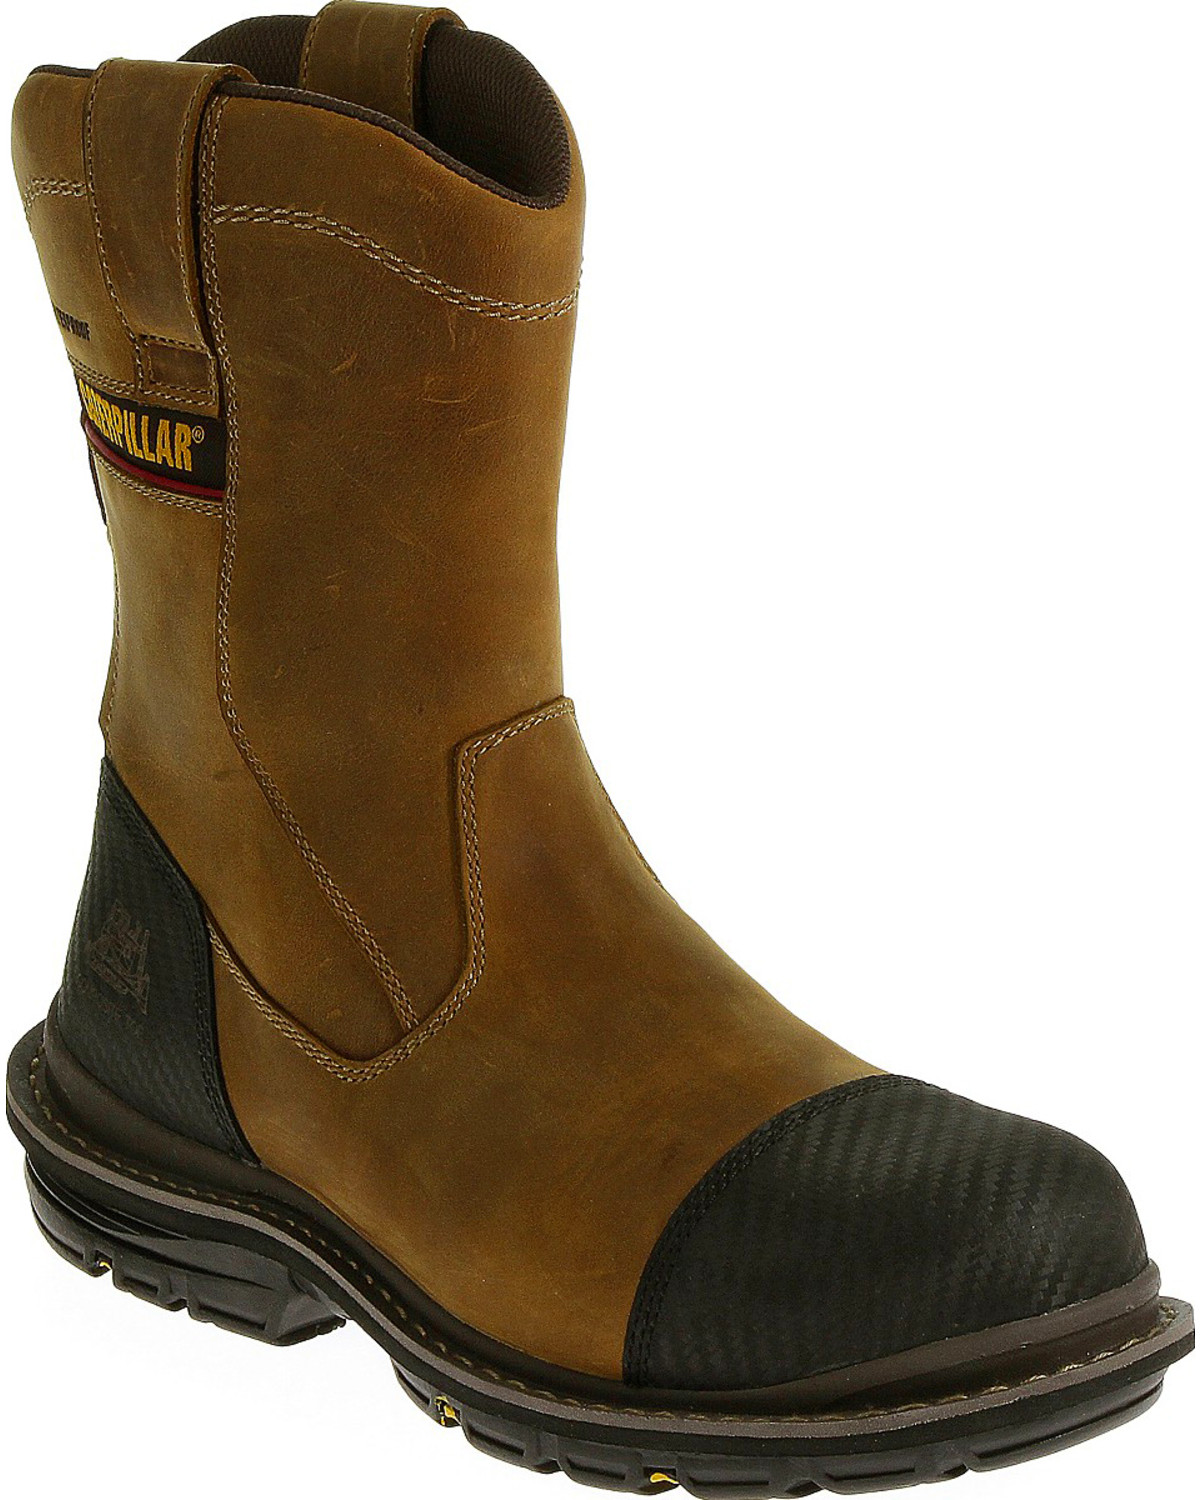 Tough WP Comp Toe Work Boots | Boot Barn